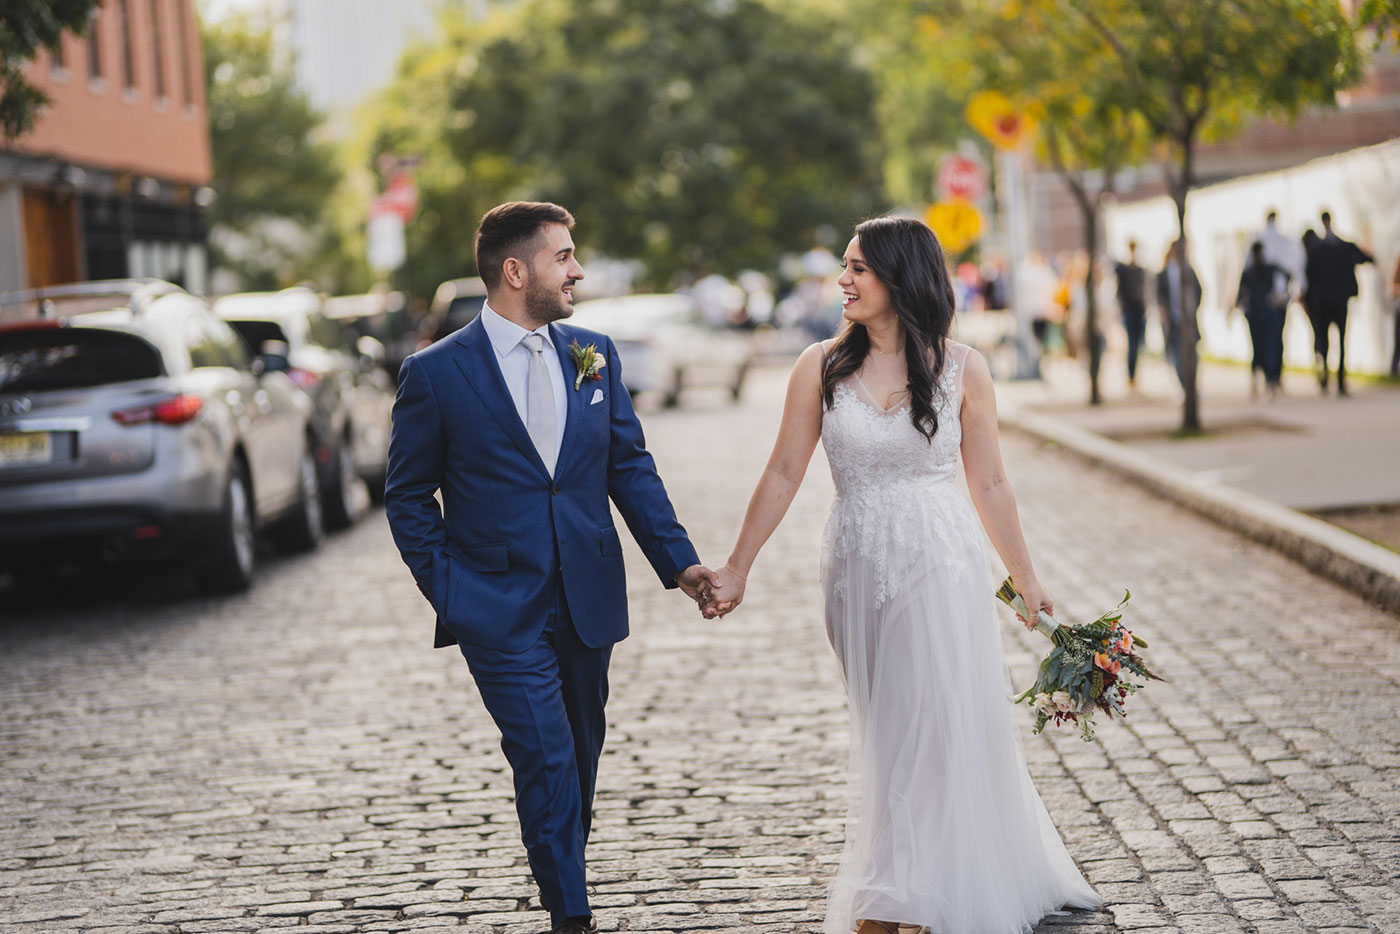 Portrait of bride and groom at an elopement at Jane's Carousel in Brooklyn Bridge Park by Weddings by Hanel